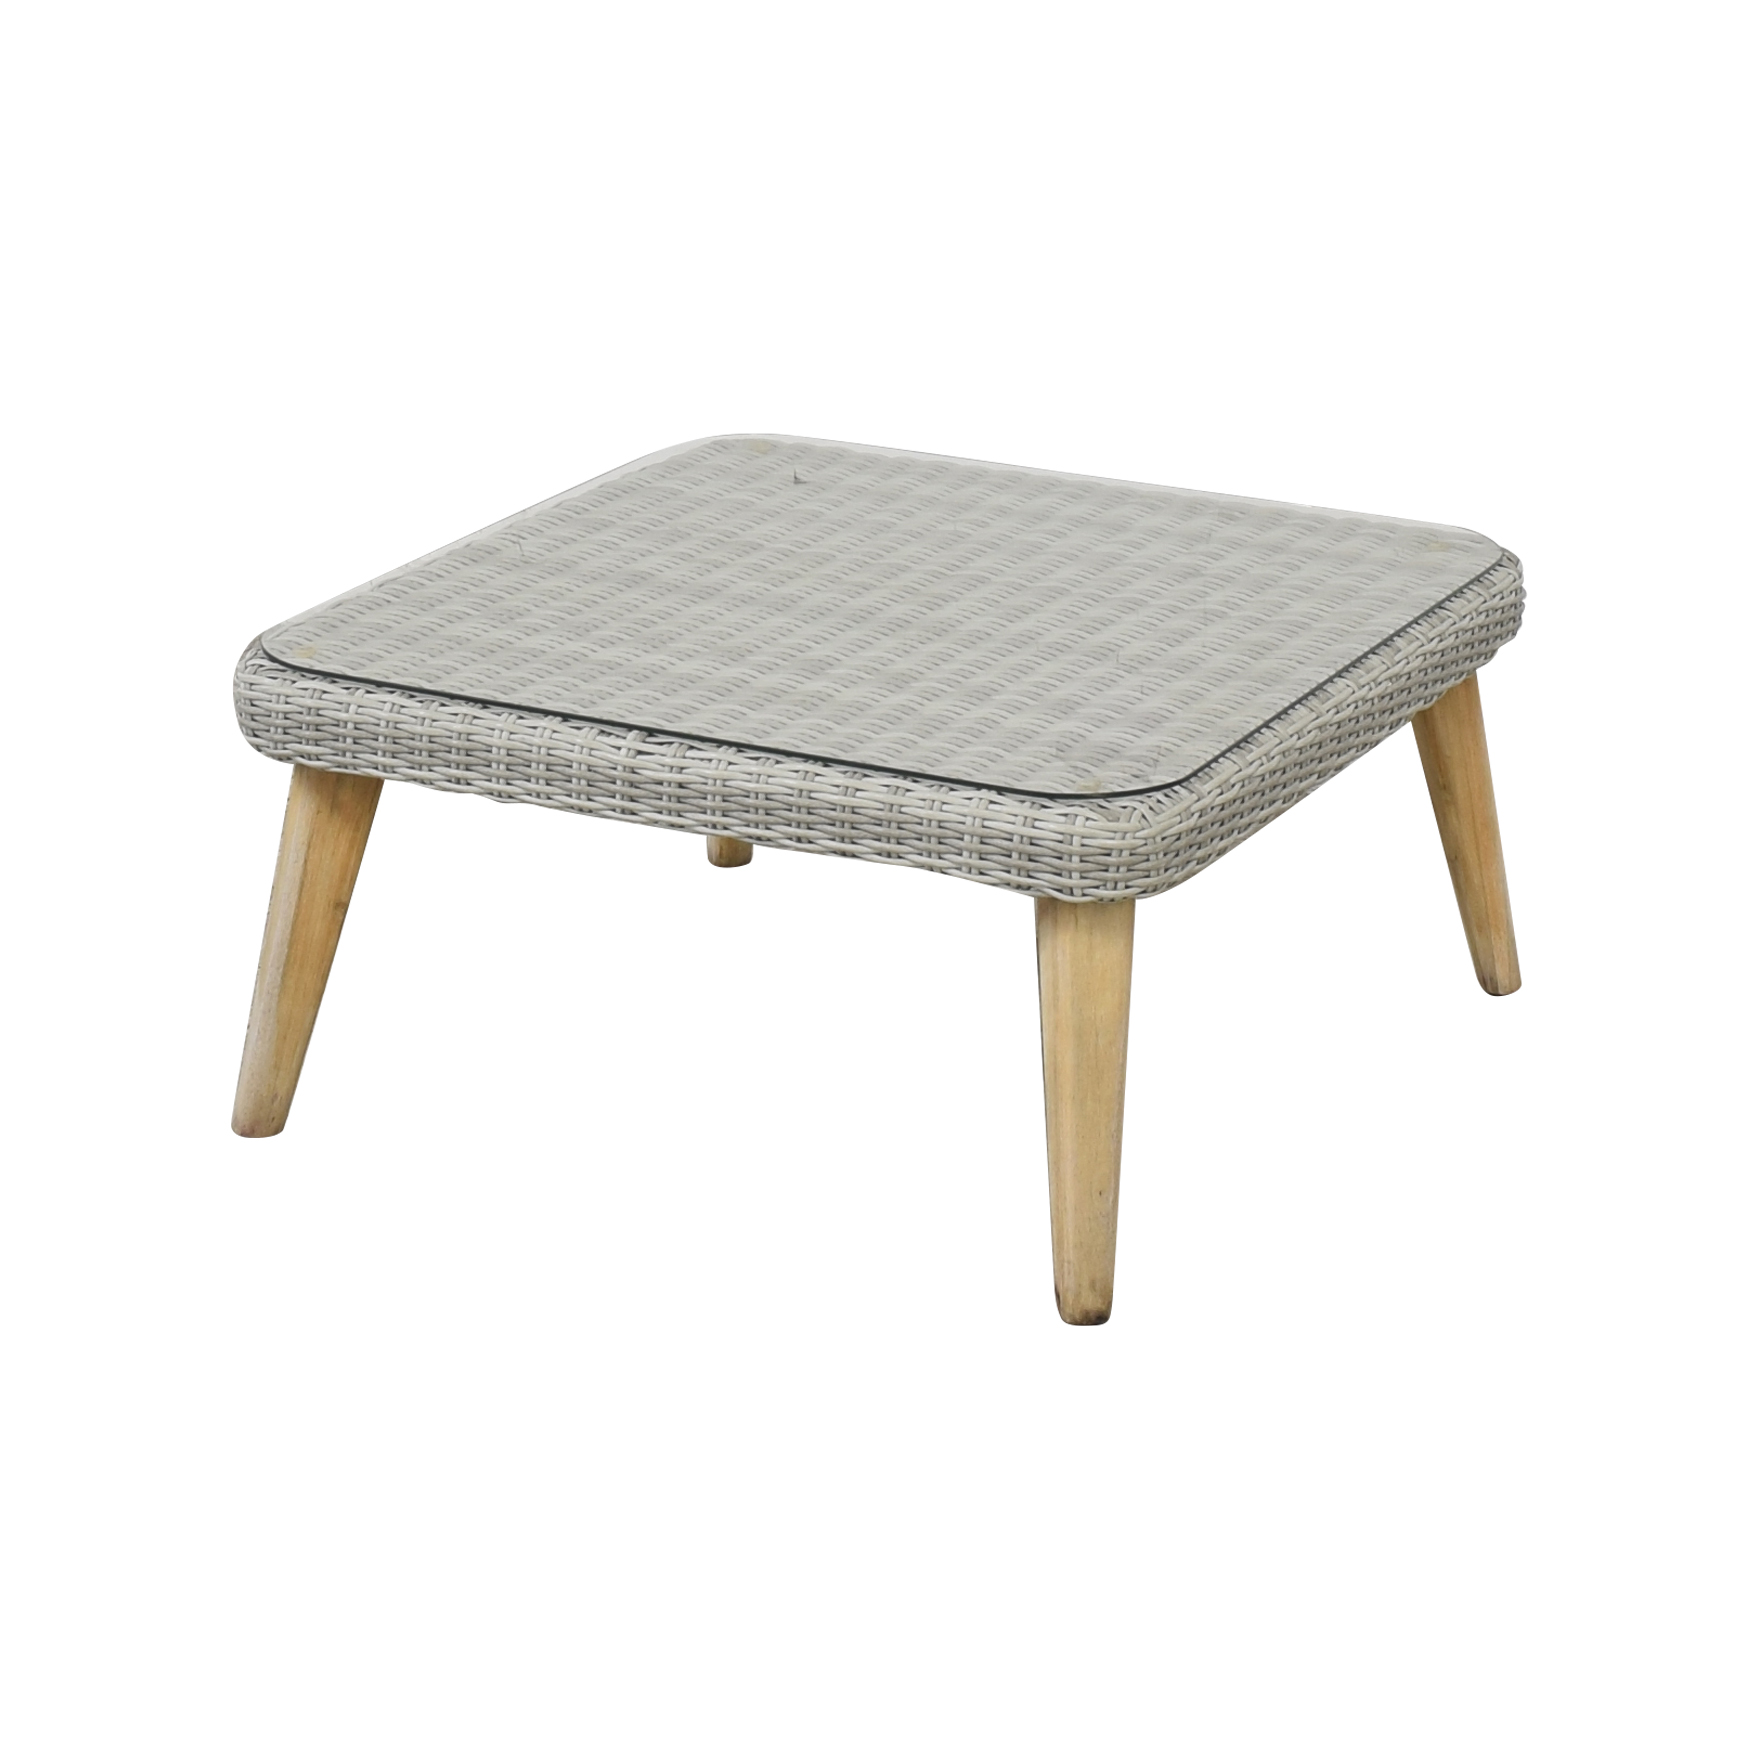 Article Article Ora Beach Sand Coffee Table dimensions